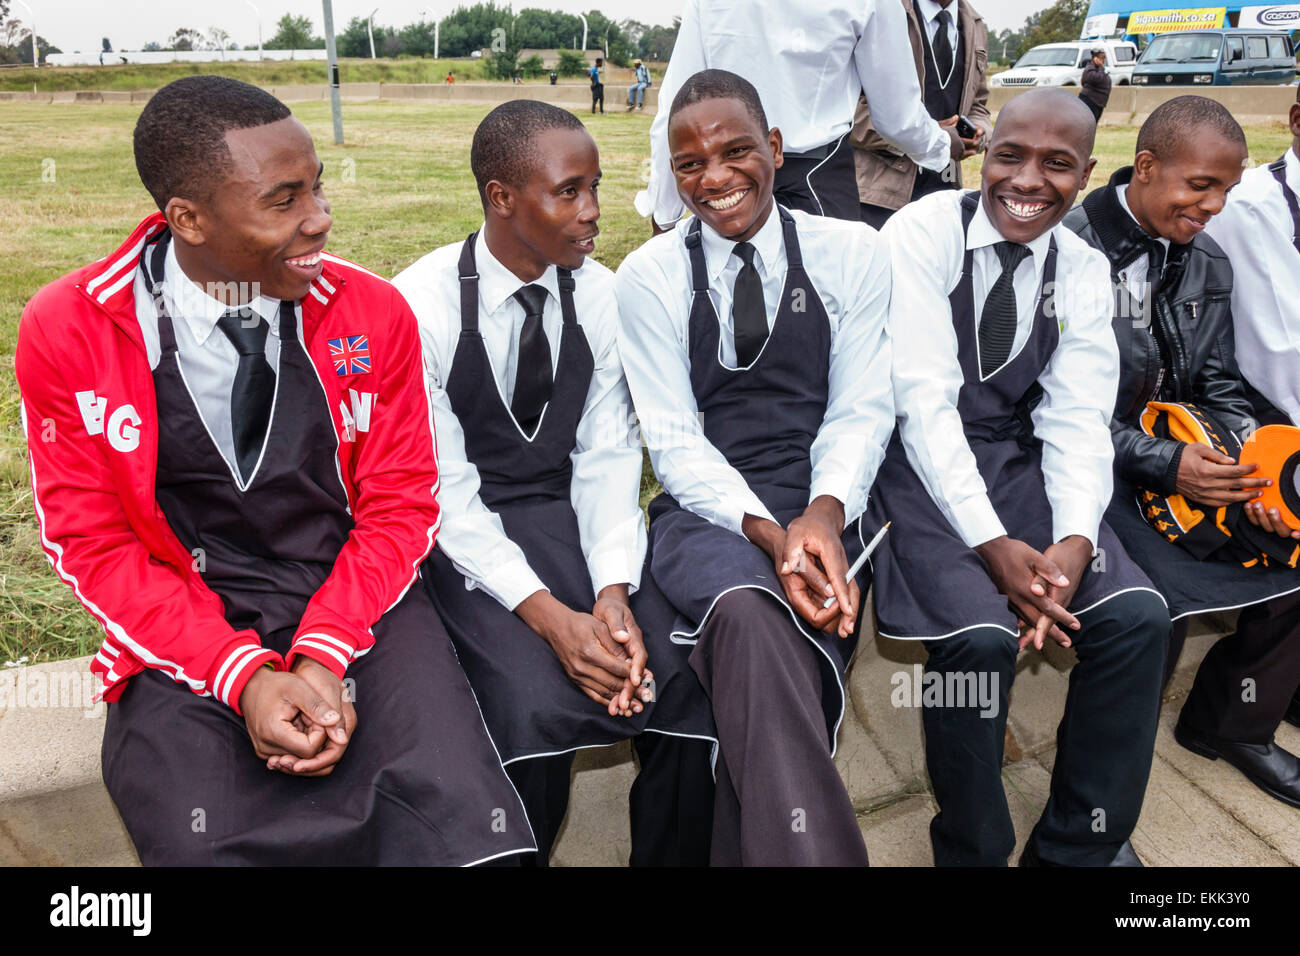 Game for coworkers - Johannesburg South Africa African Nasrec Fnb Soccer City Stadium The Calabash Black Man Coworkers Uniform Before Game Football Servers Waiters